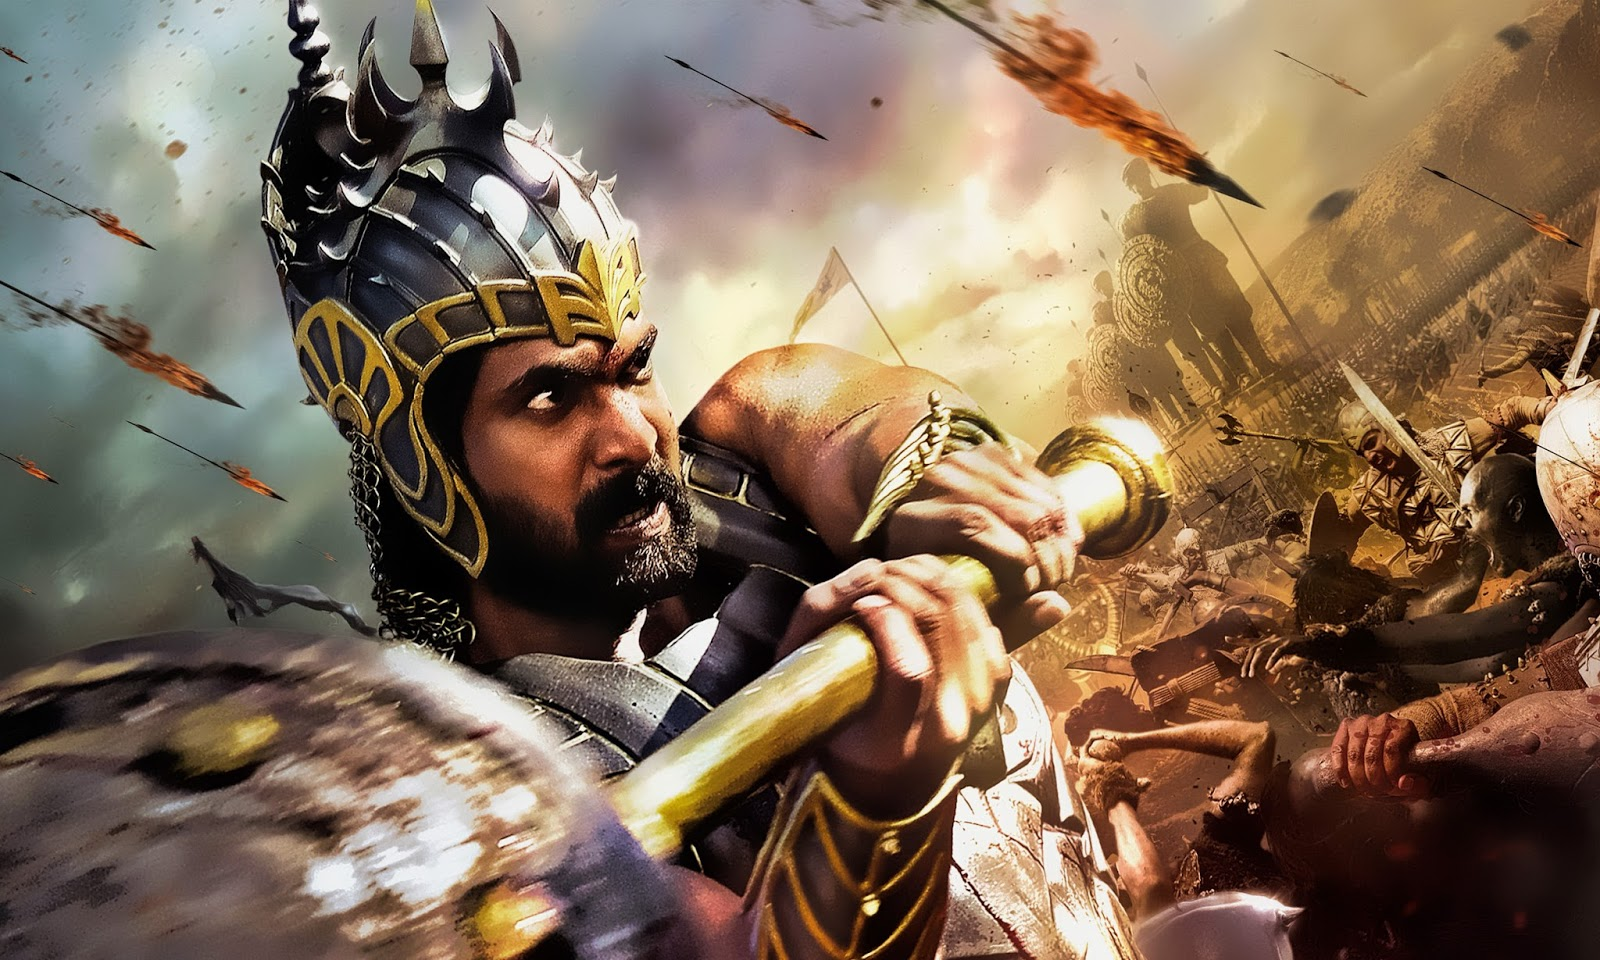 Wallpaper download bahubali 2 - Bahubali Hd Wallpapers Hd Wallpapers High Definition Free Background